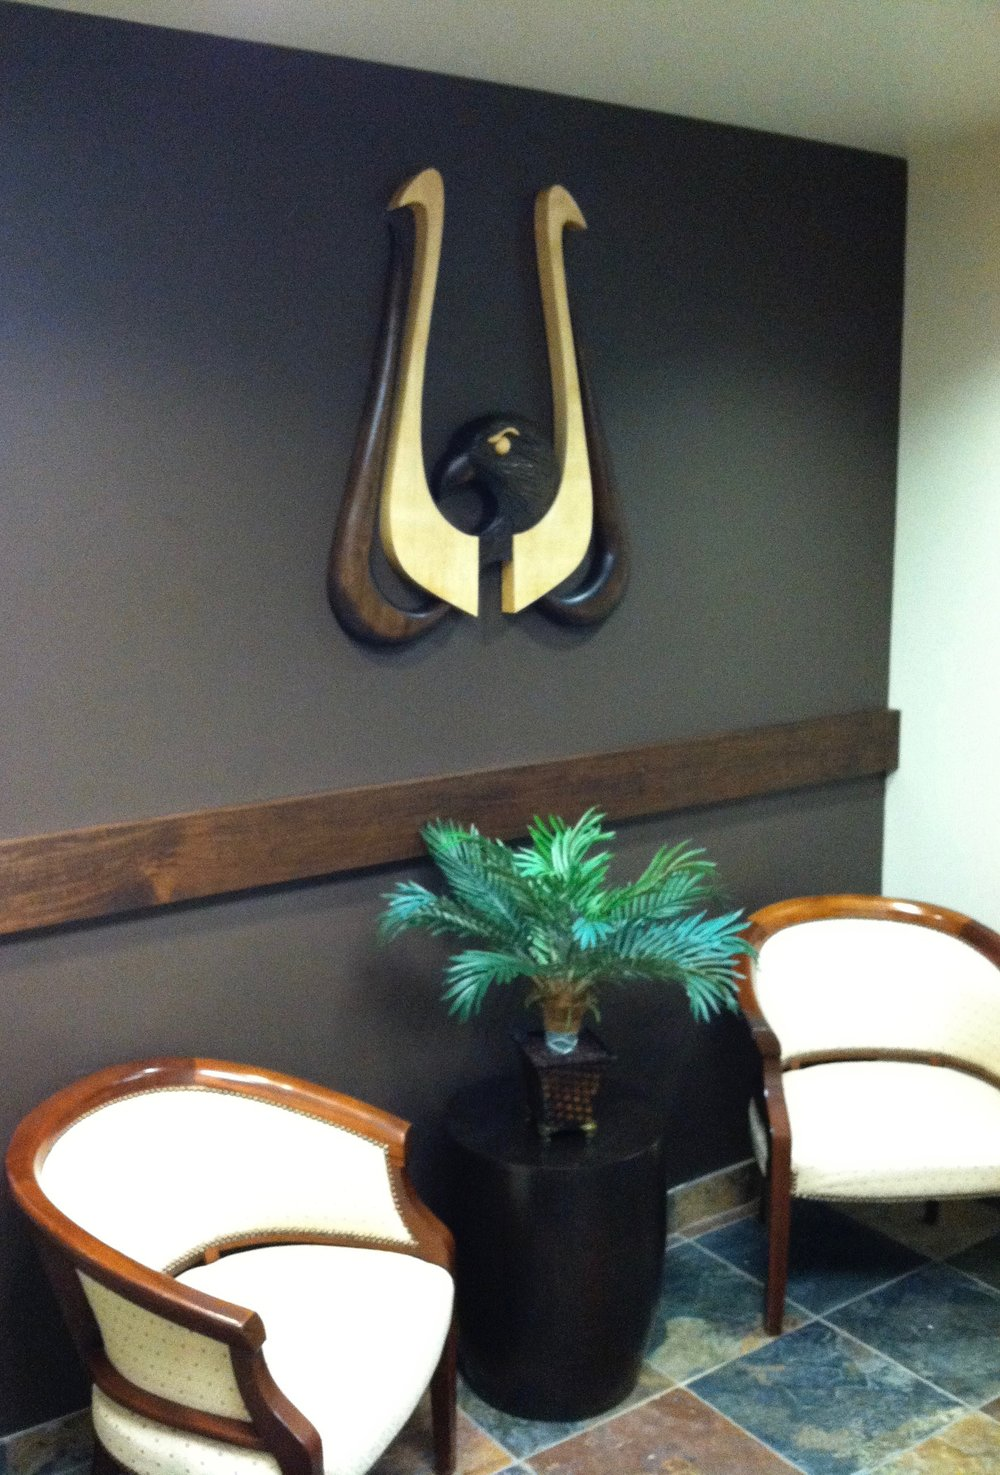 Wall mounted sculpture installed in corporate office.